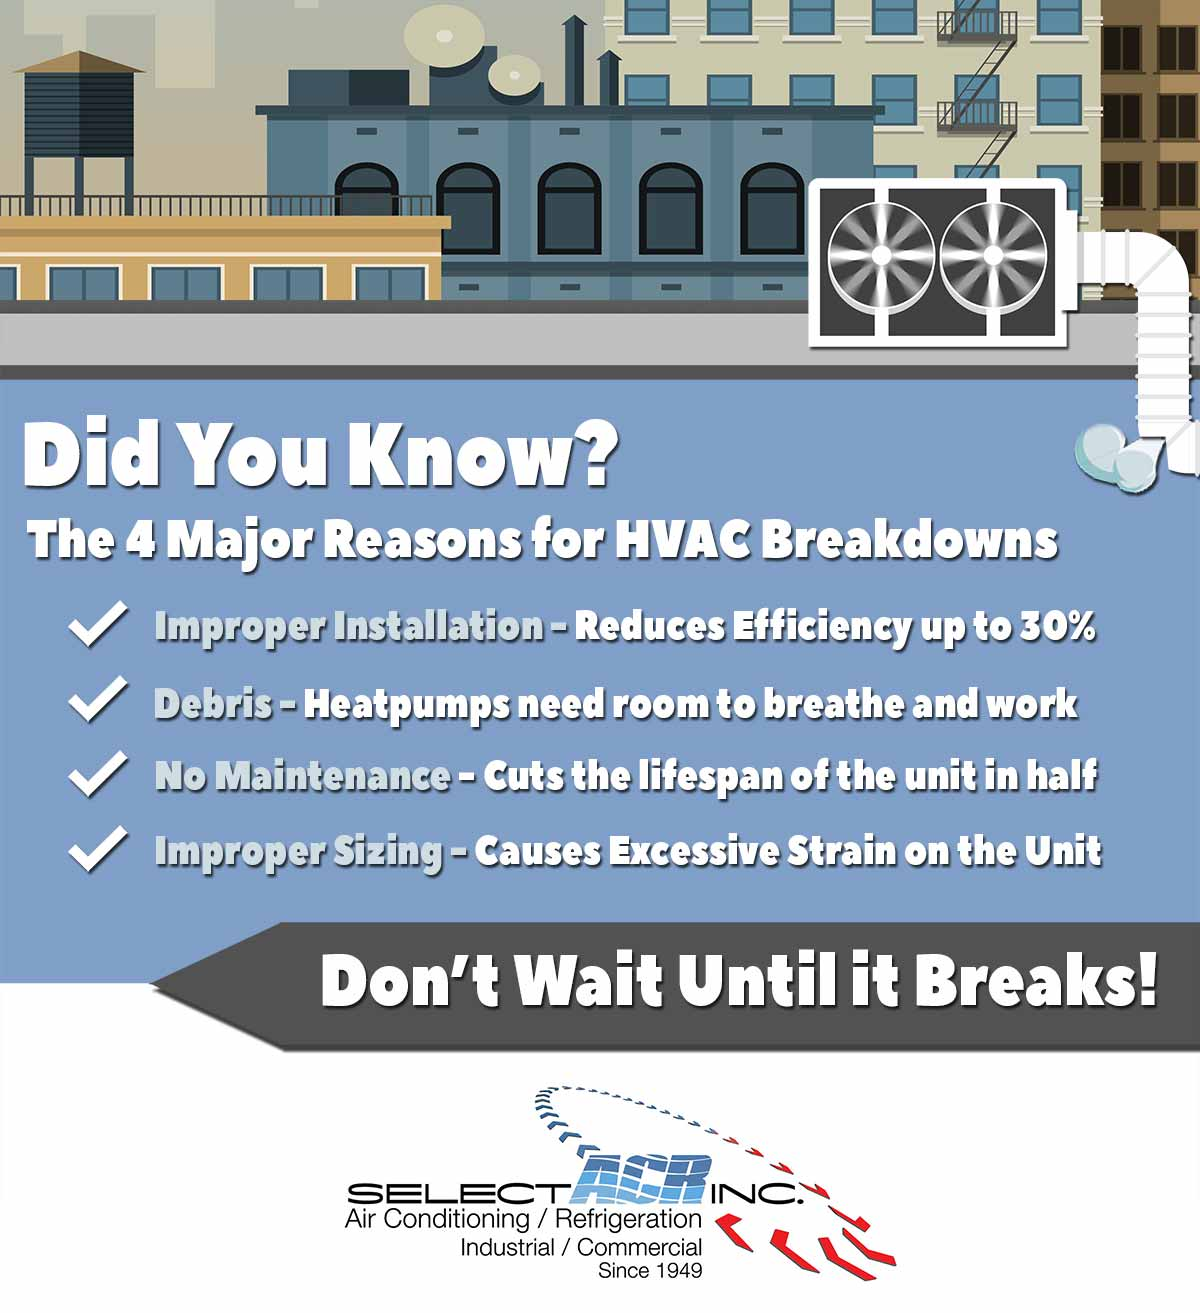 HVAC-tips-and-facts-infographic.jpg